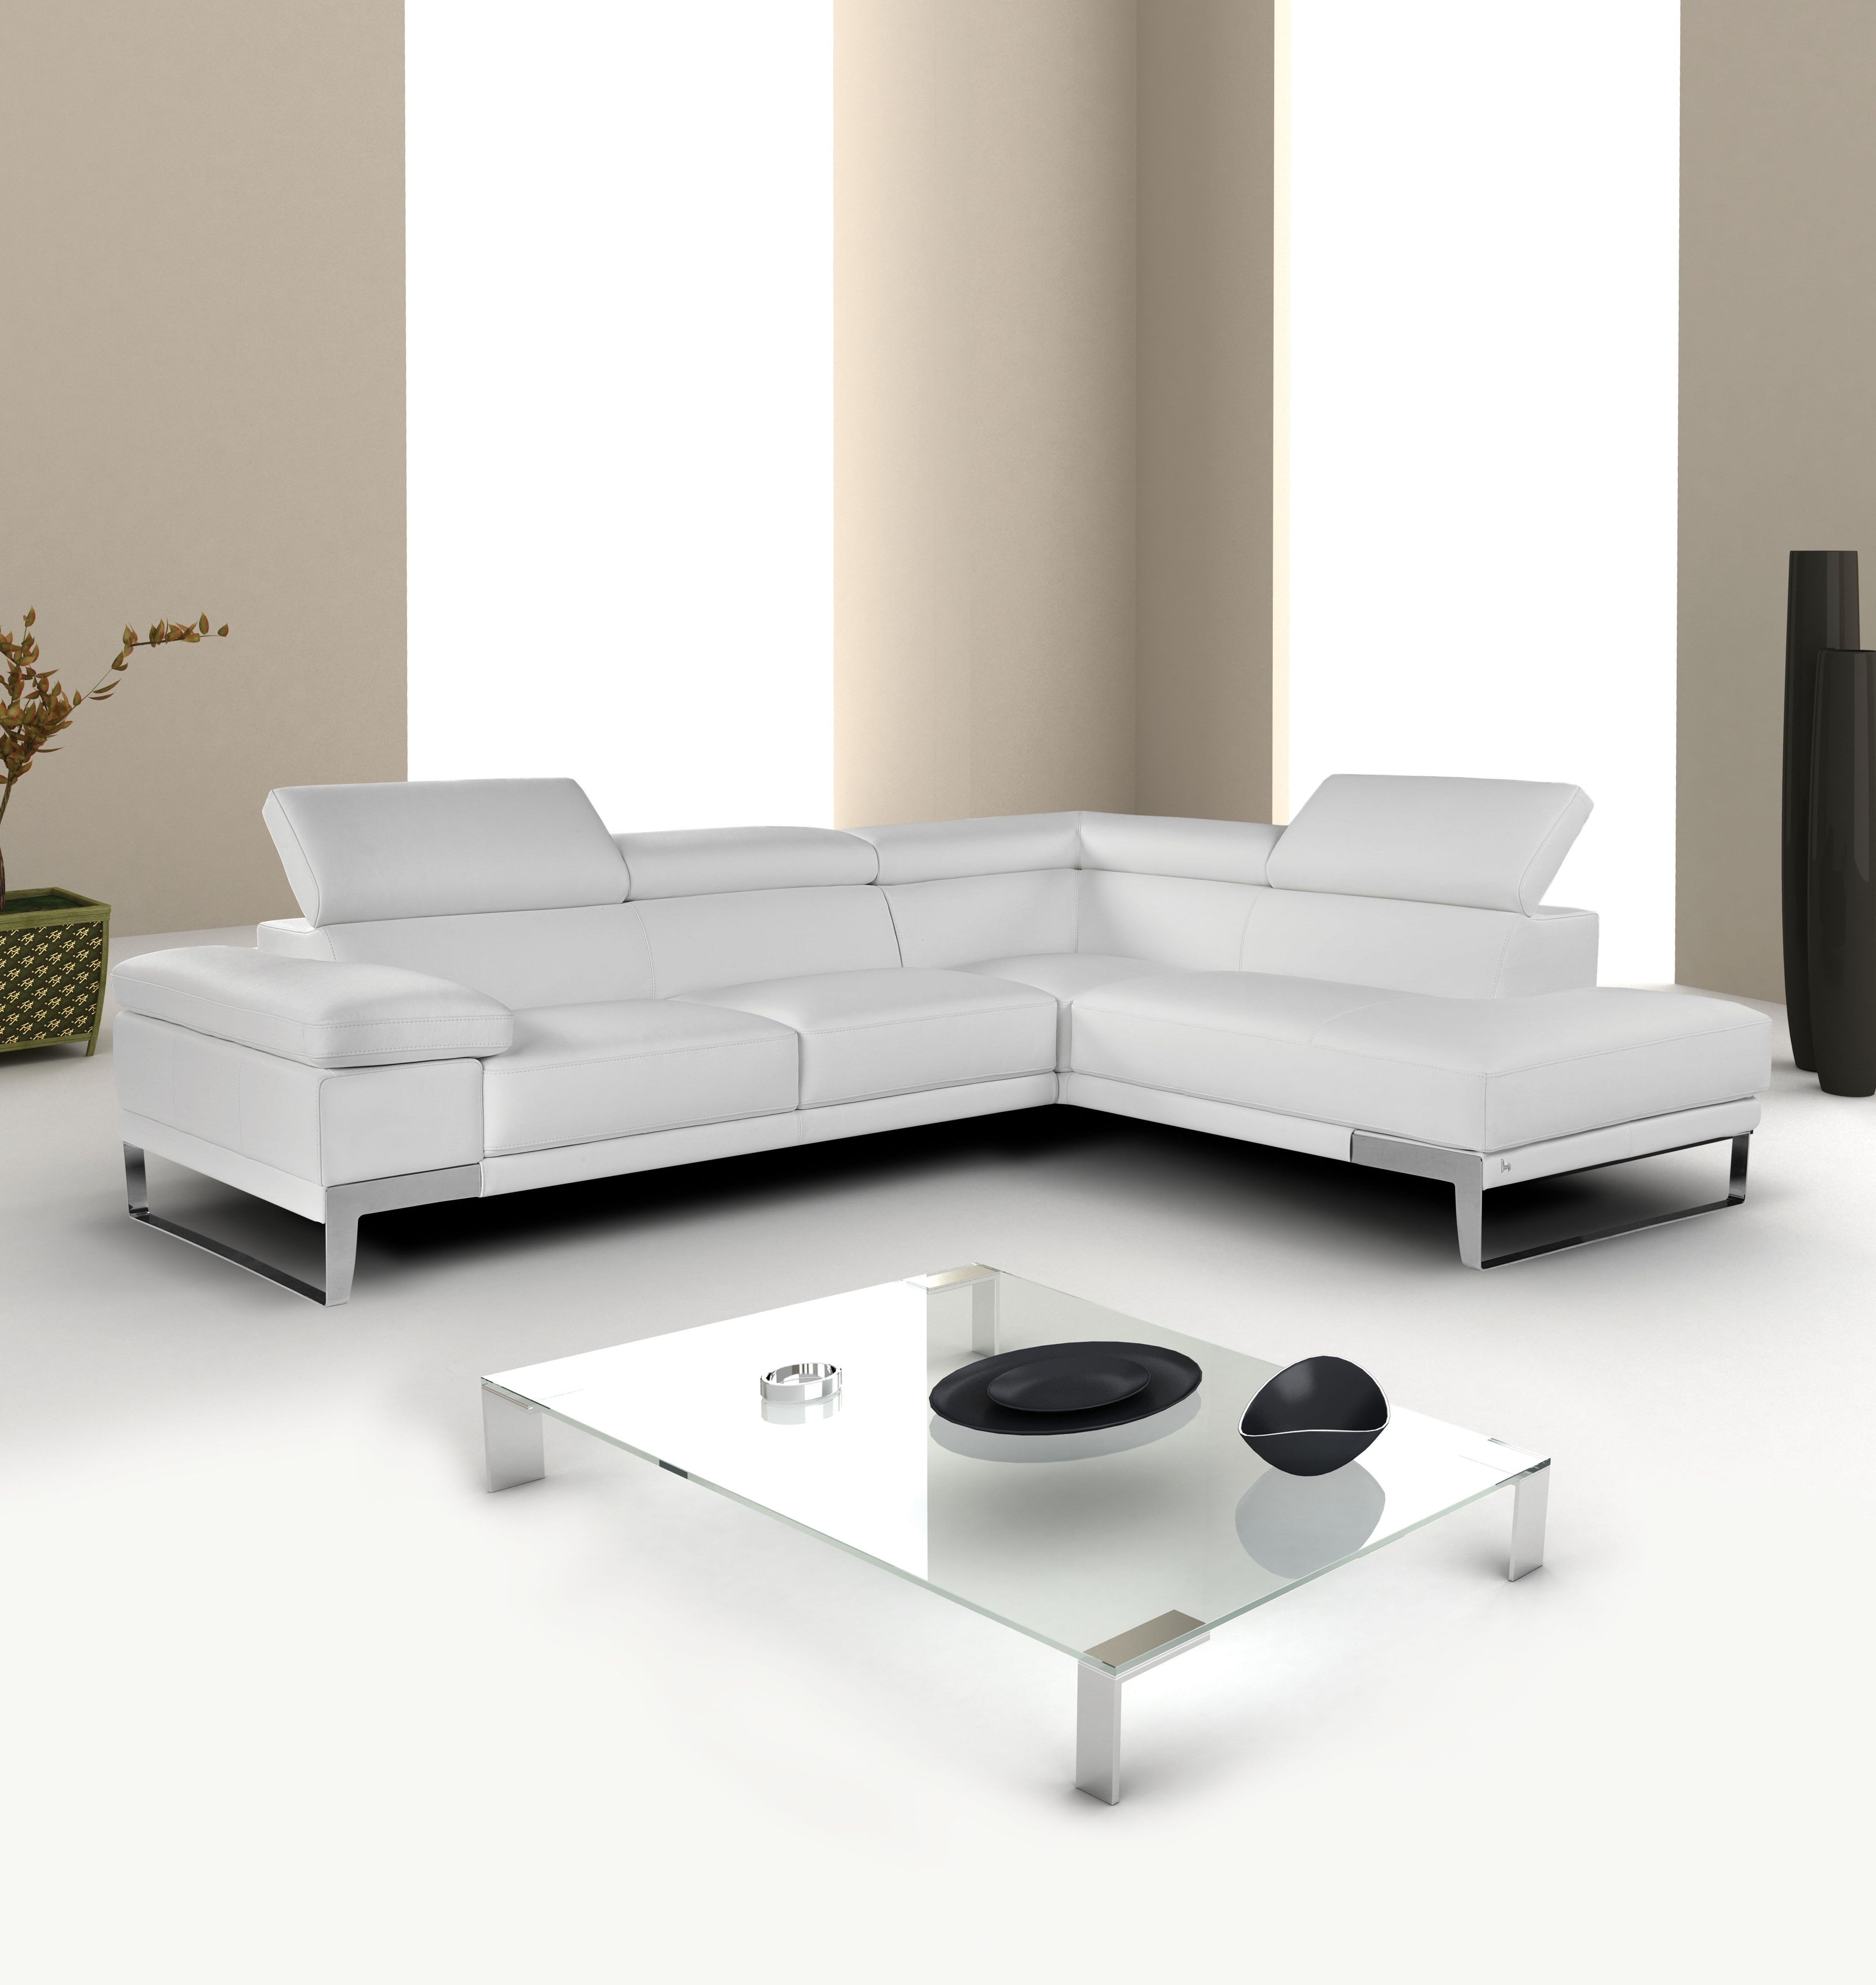 Sectional Modern Sofa Interior White Button Leather Furniture In Well Known Vancouver Bc Canada Sectional Sofas (View 9 of 15)